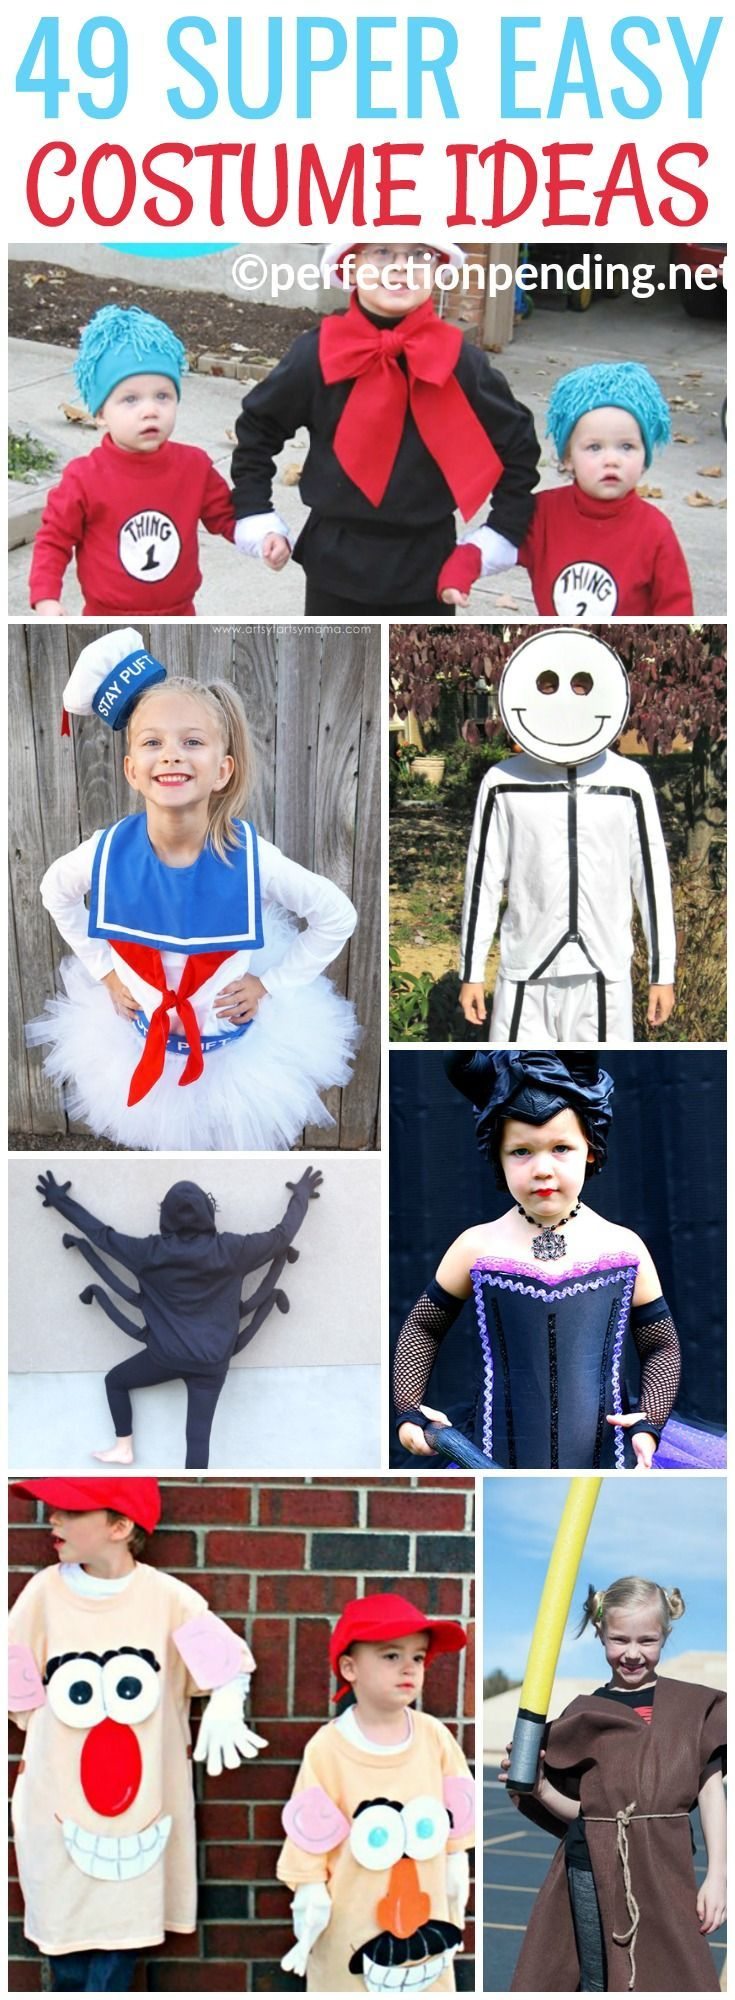 Let's be honest, sometimes it's hard to find cheap costume ideas that won't break the bank. But, it's just as hard to find easy Halloween costumes when you aren't crafty. These no sew and simple costume ideas for kids are the perfect mix of fun and easy f